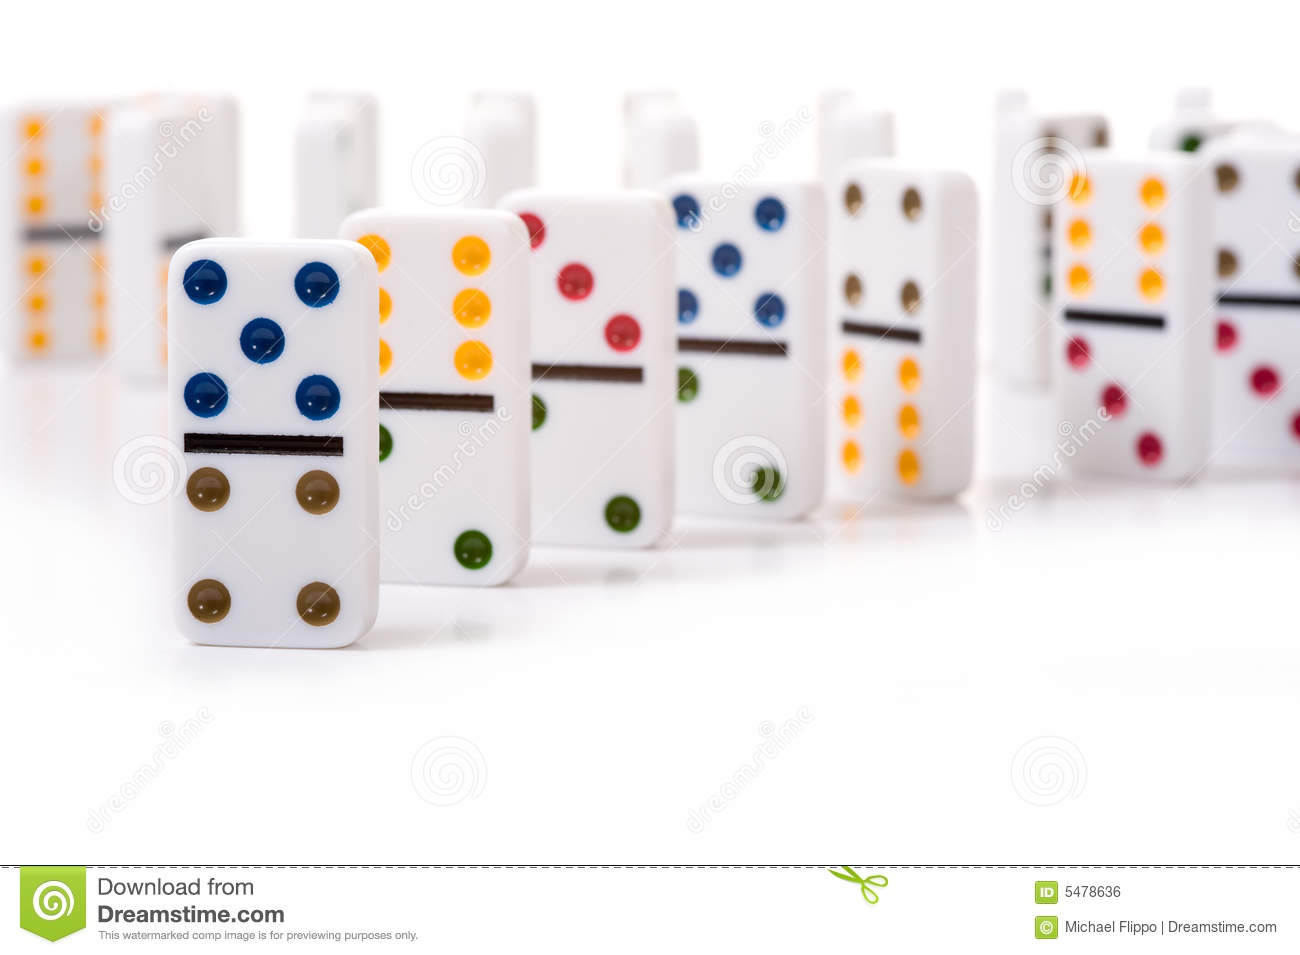 Dominos stock photo. Image of background, space, standing - 5478636